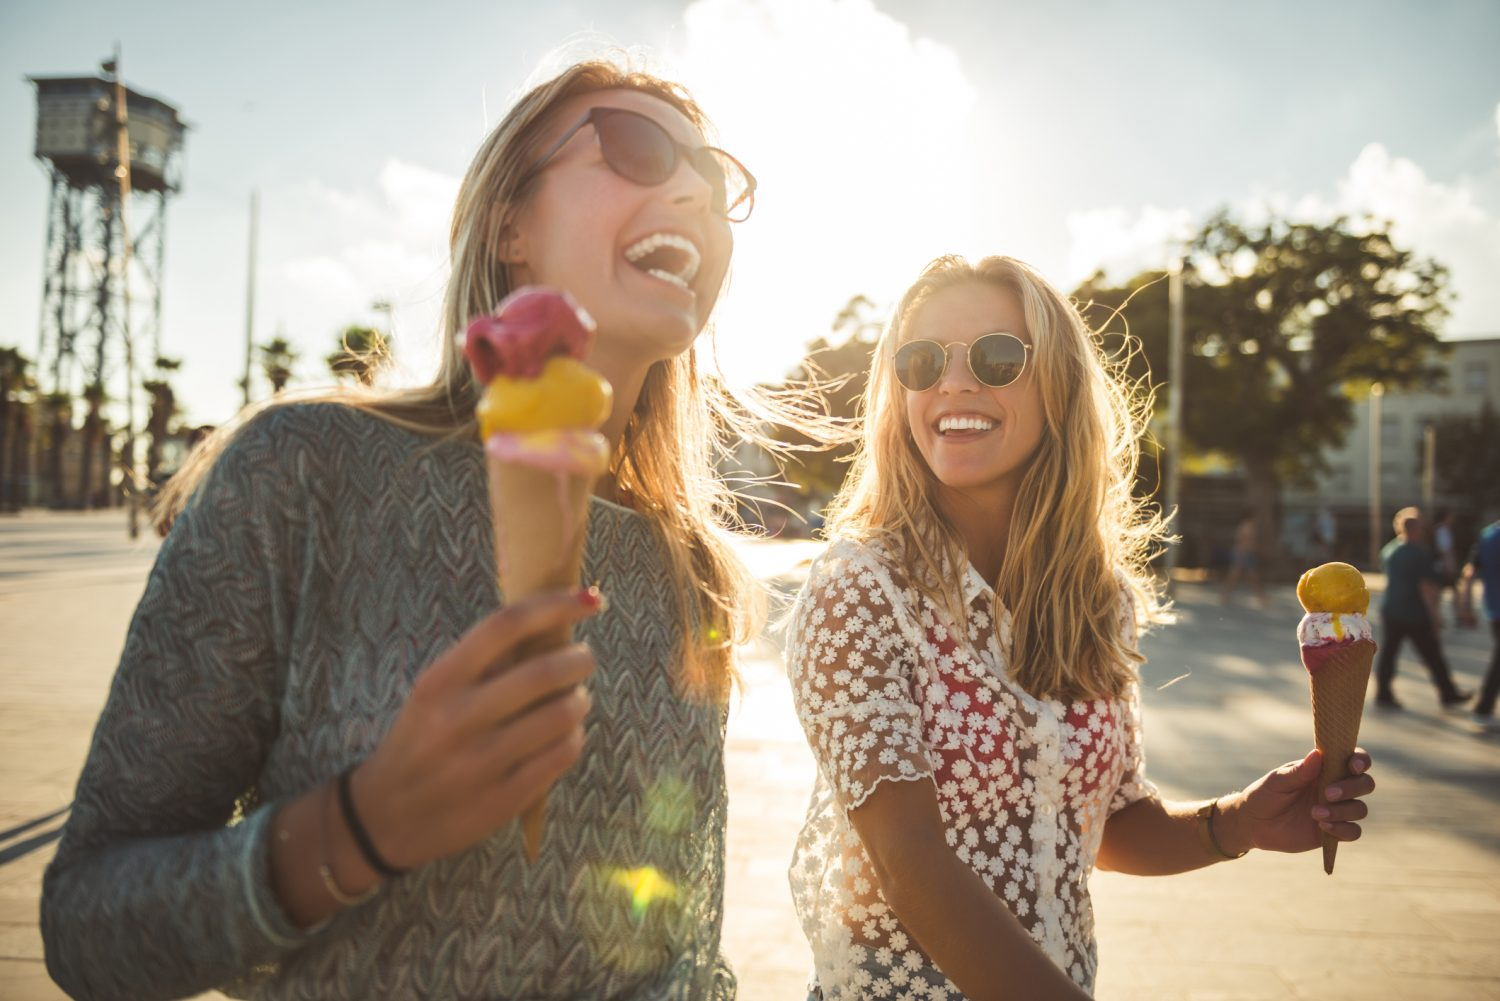 Two women eating ice cream and laughing